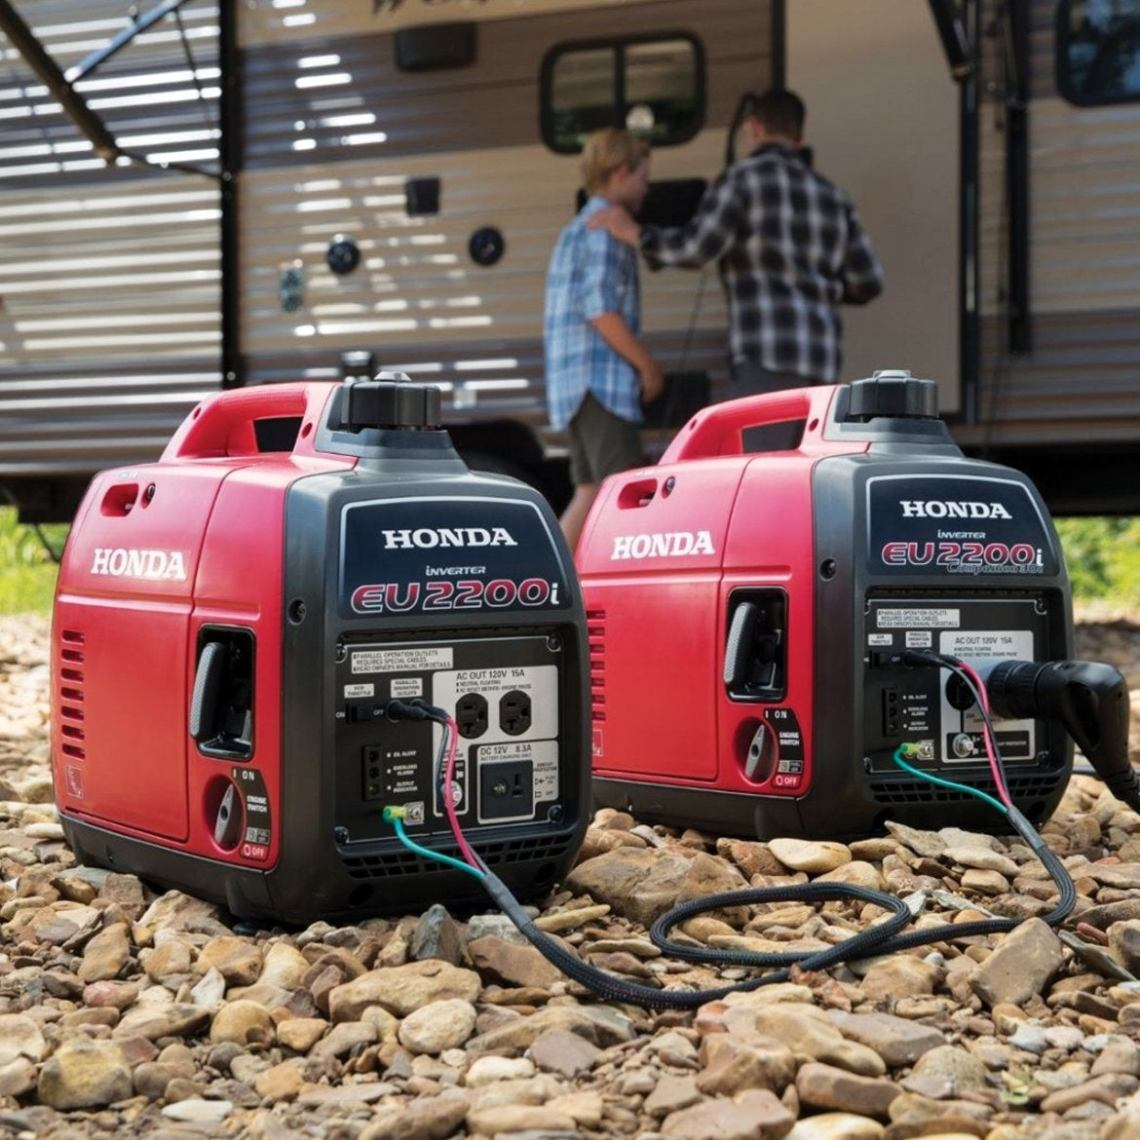 two portable generators on the ground near an RV